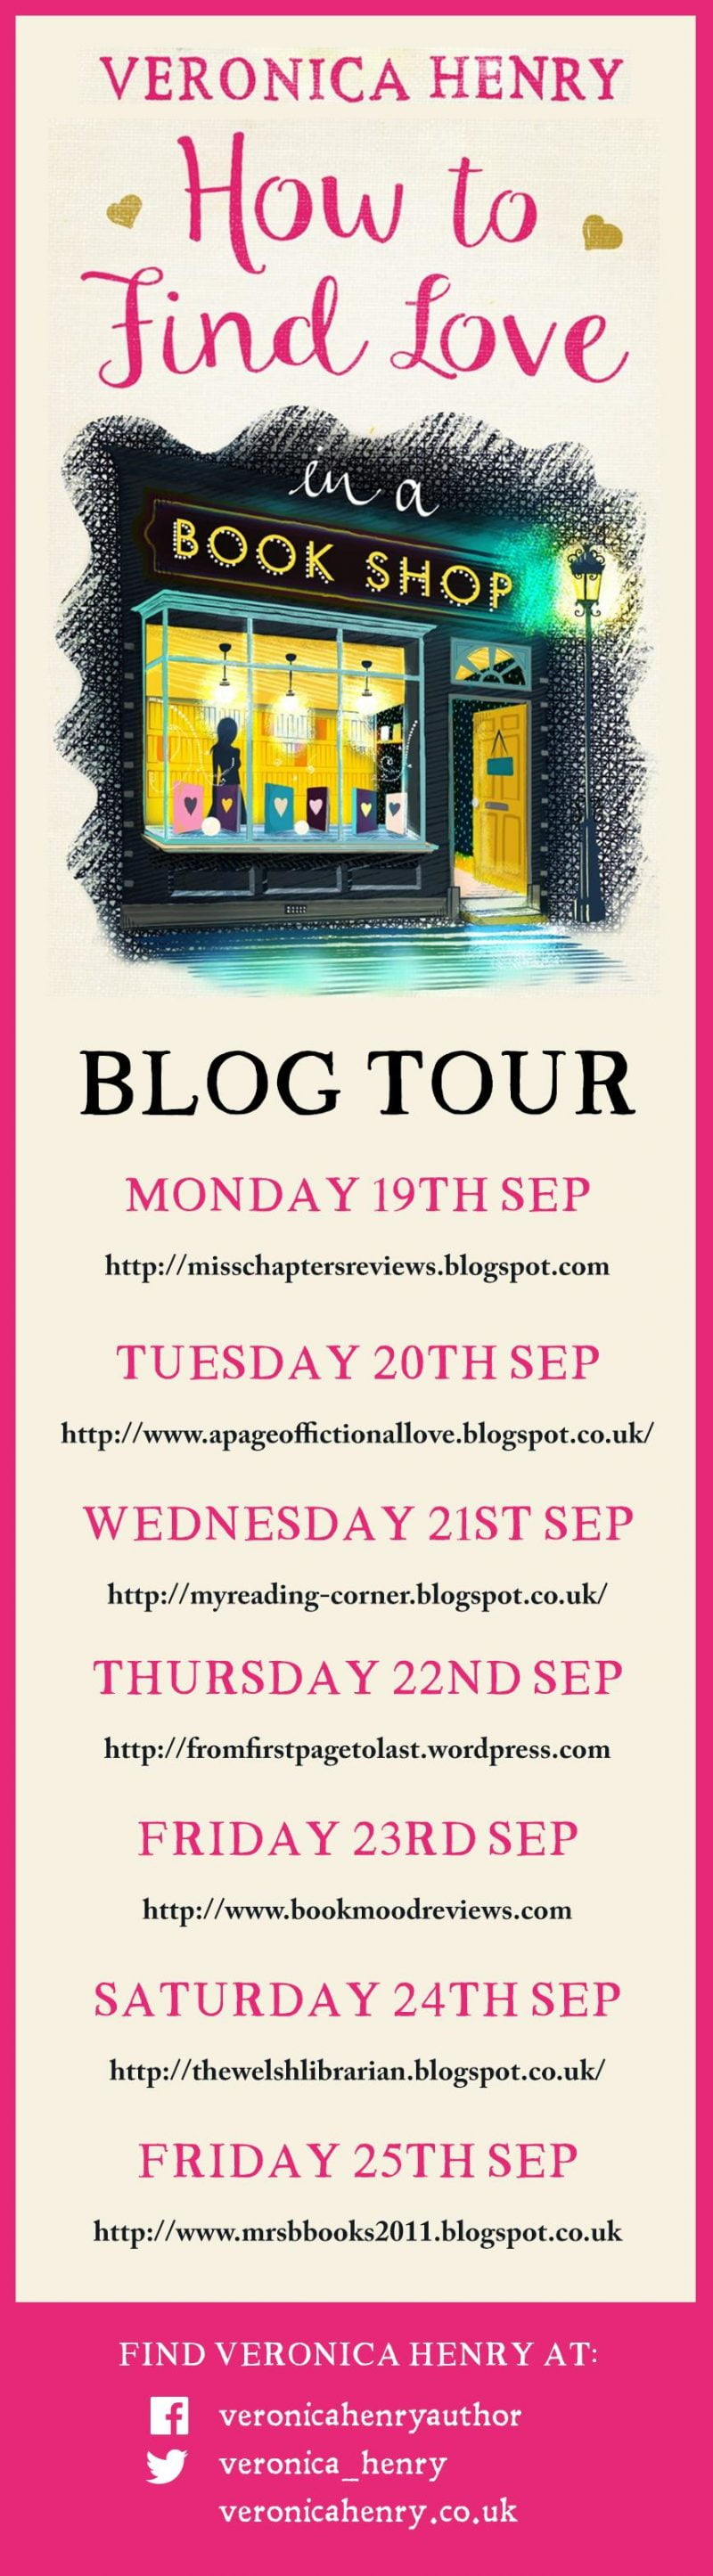 how-to-find-love-blog-tour-12